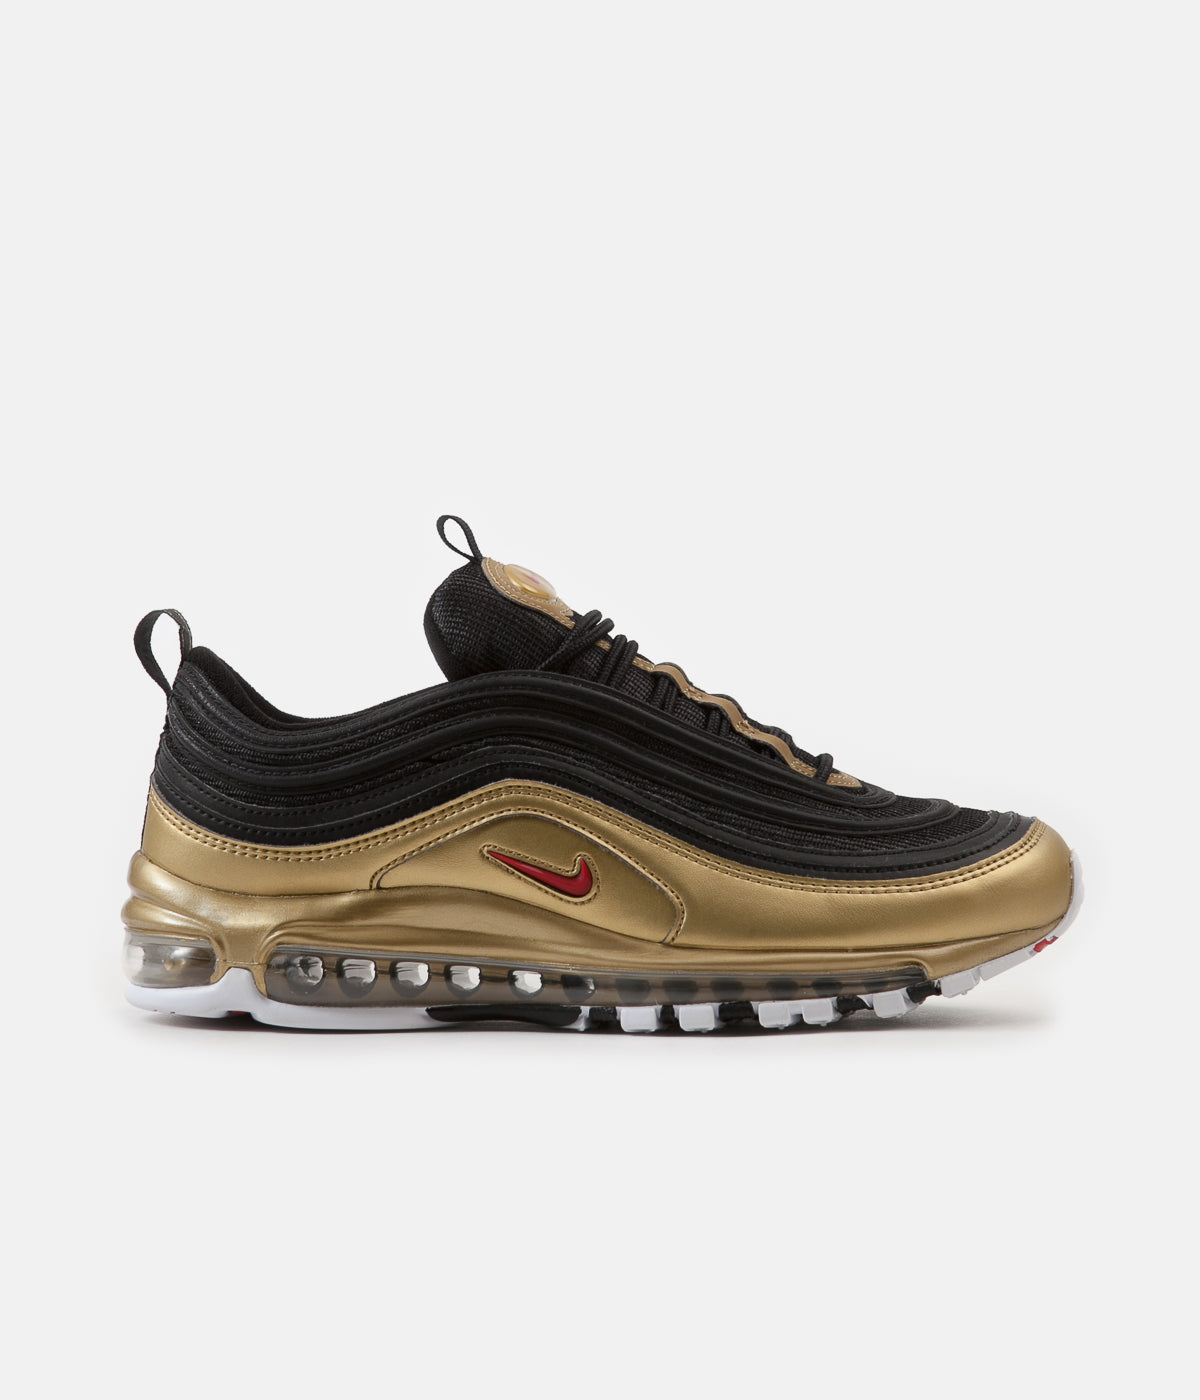 Nike Air Max 97 QS BlackVarsity Red Metallic Gold White For Sale